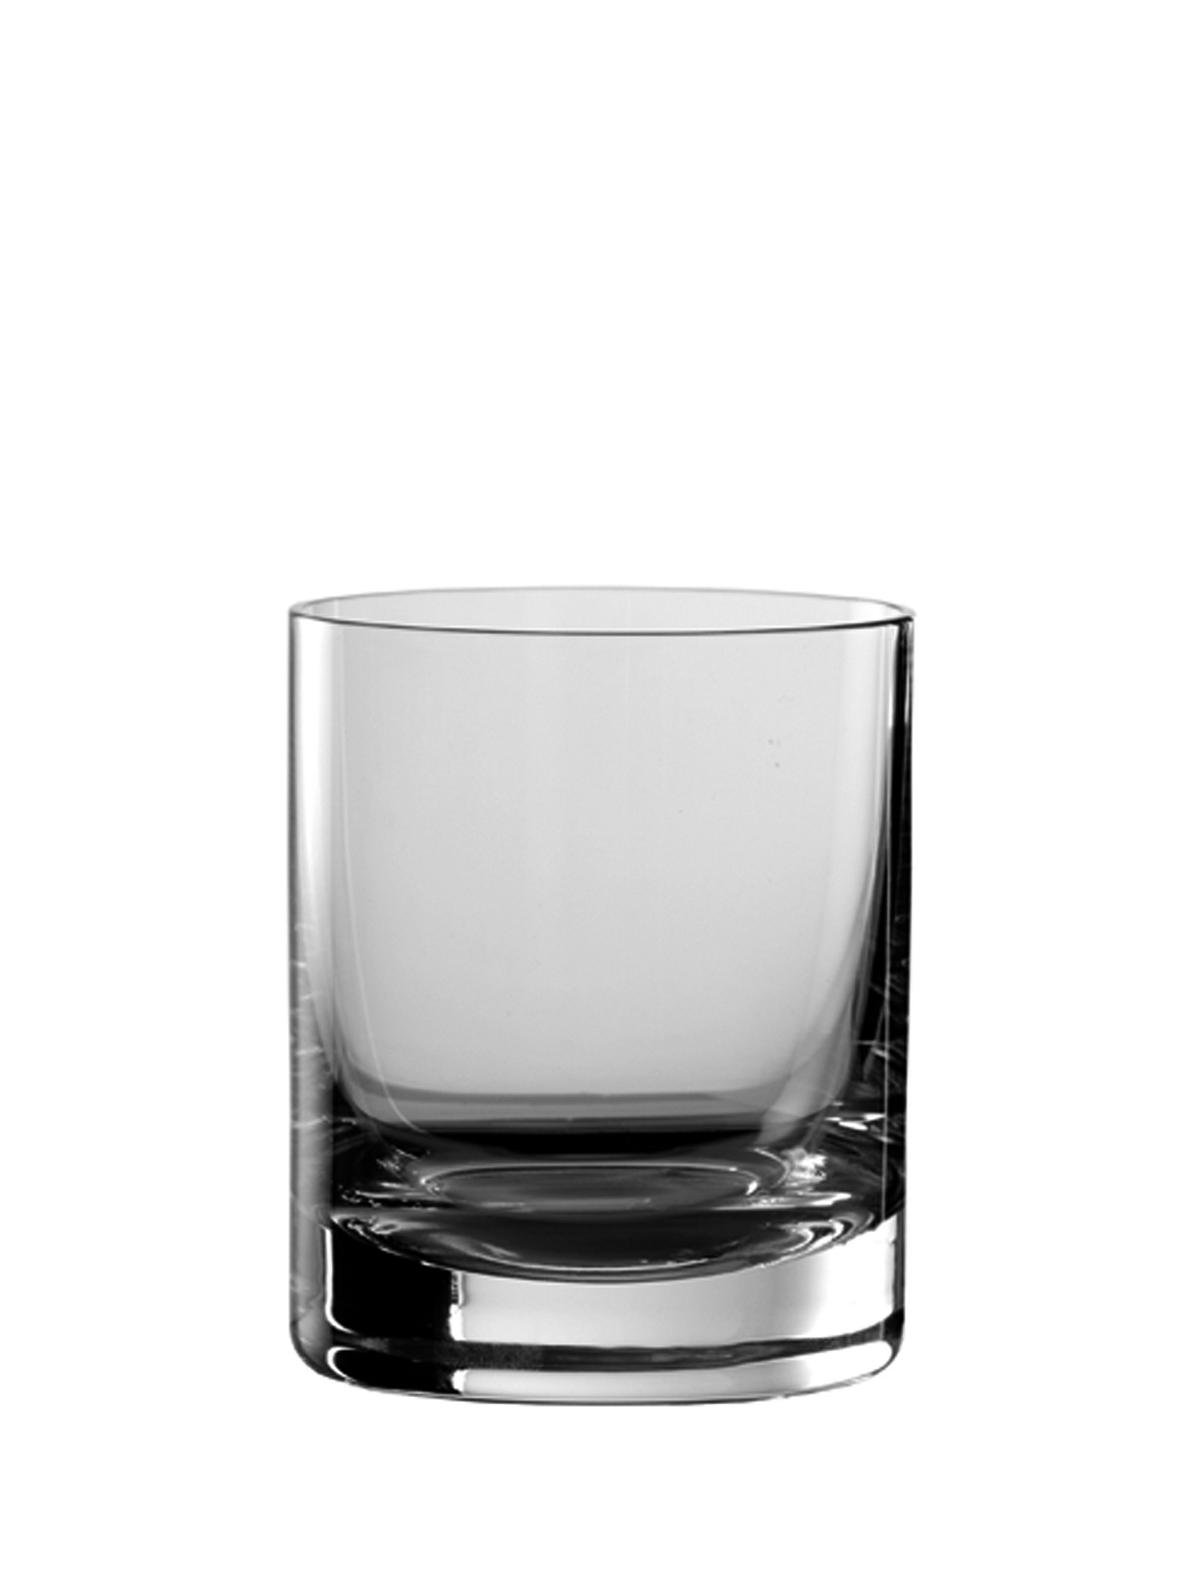 Stolzle New York Bar Double Old Fashioned Glasses, Set of 6